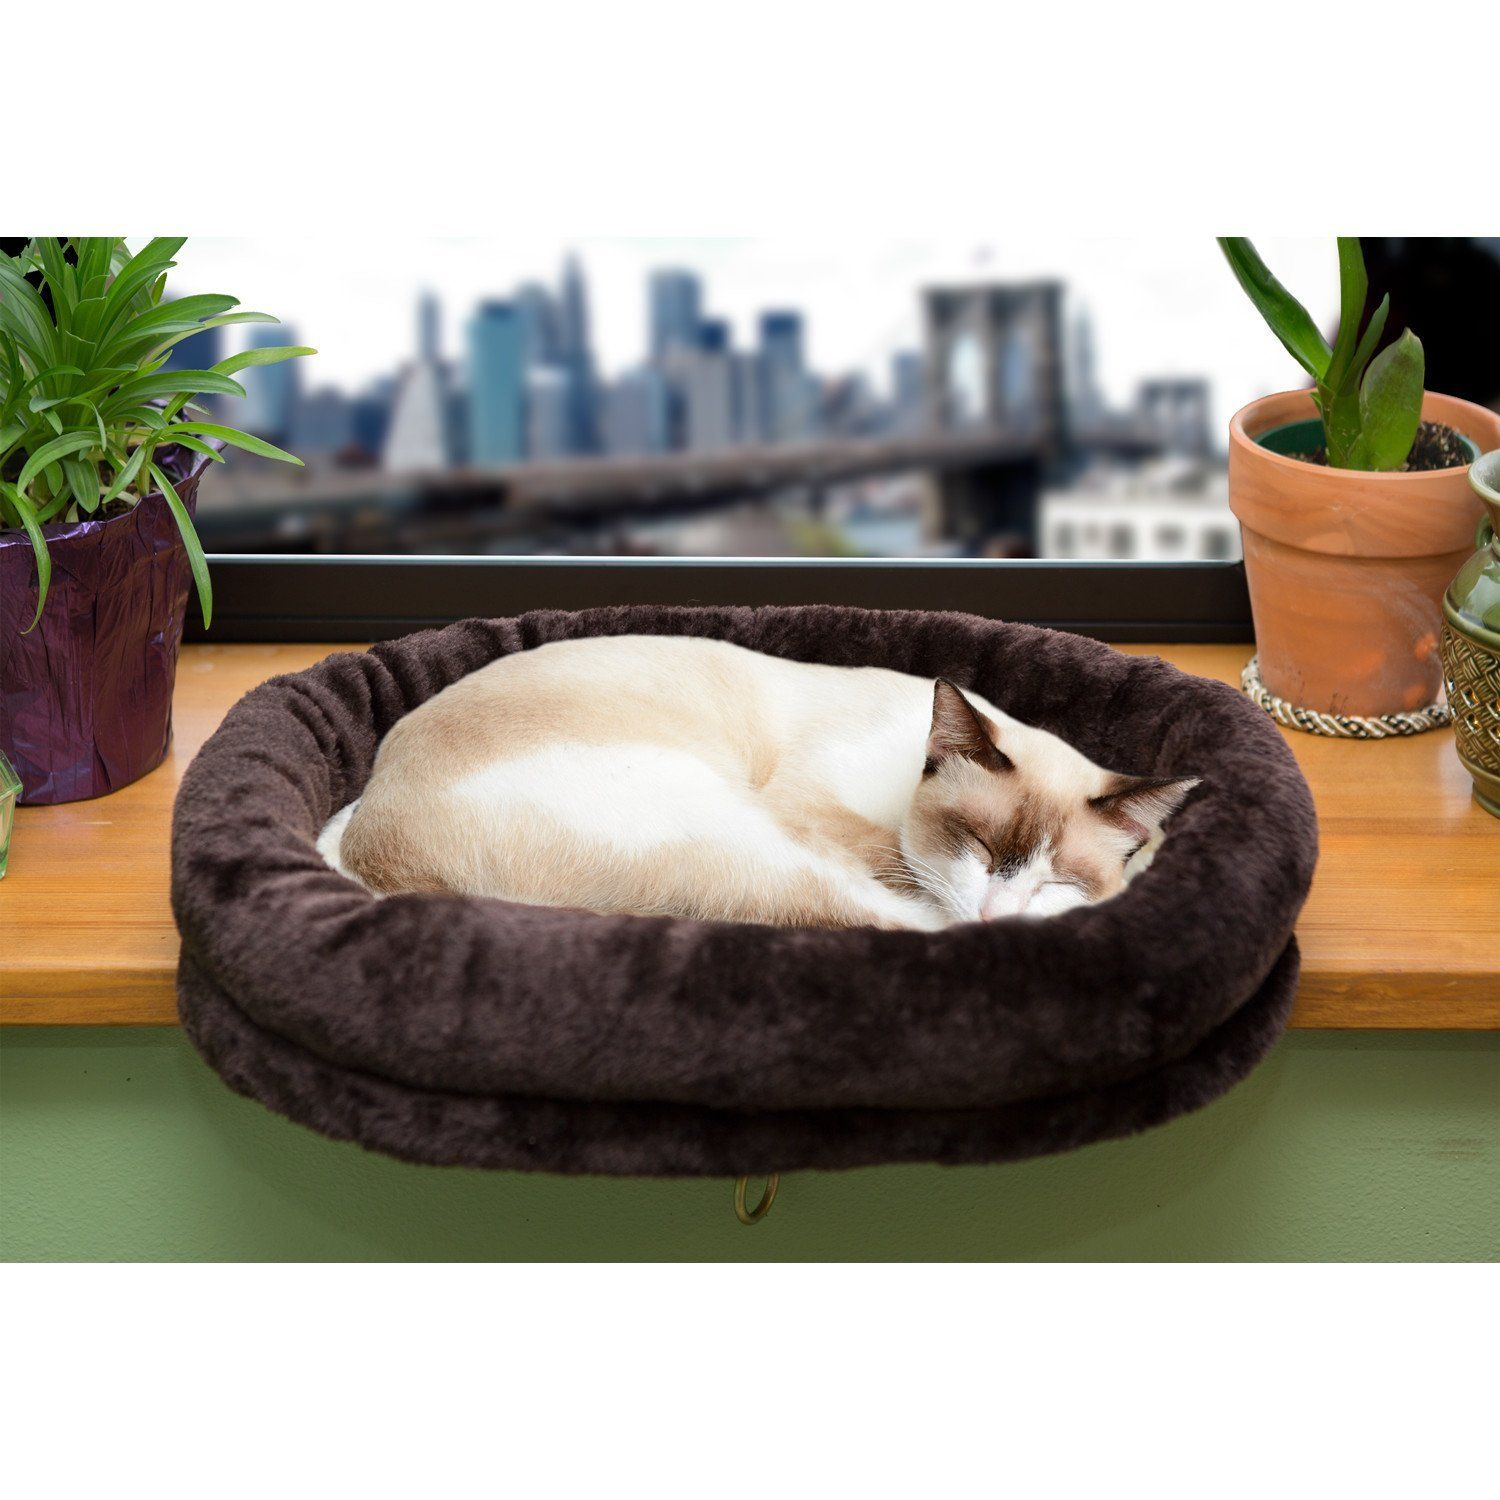 Window bed for cats  furhaven  tiger tough window perch  for more information